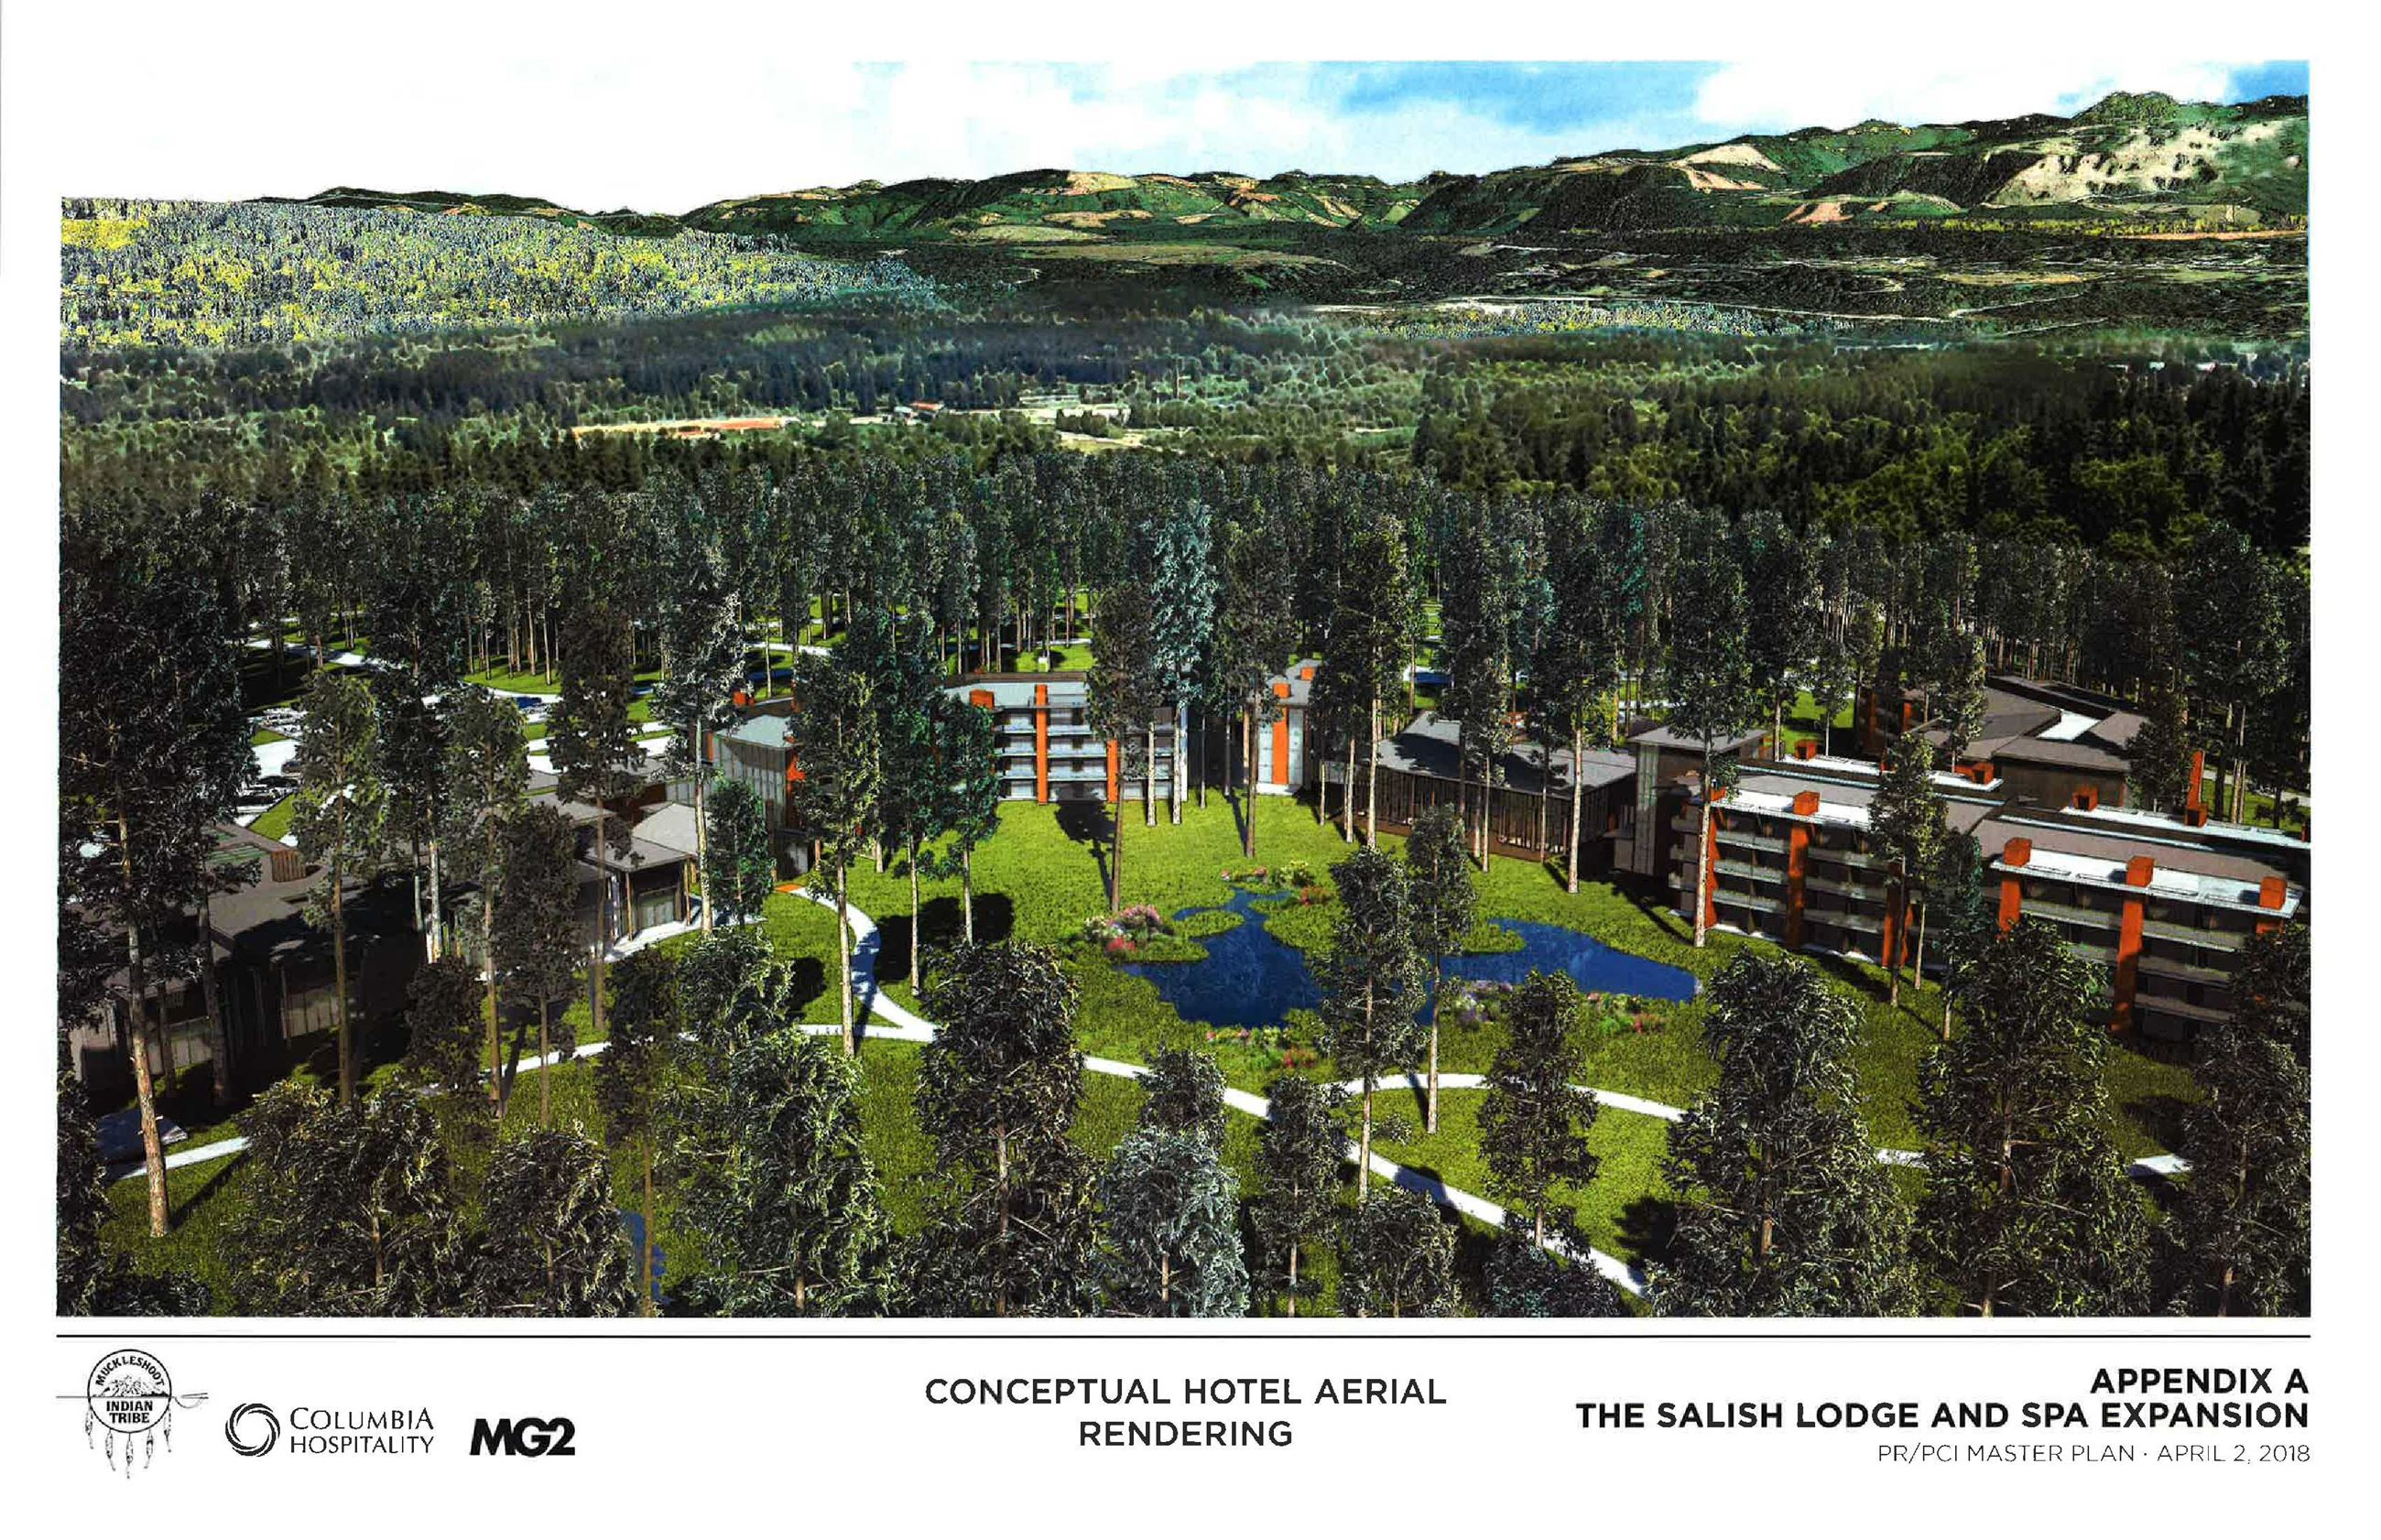 This is a conceptual aerial rendering of the expanded Salish Lodge & Spa.